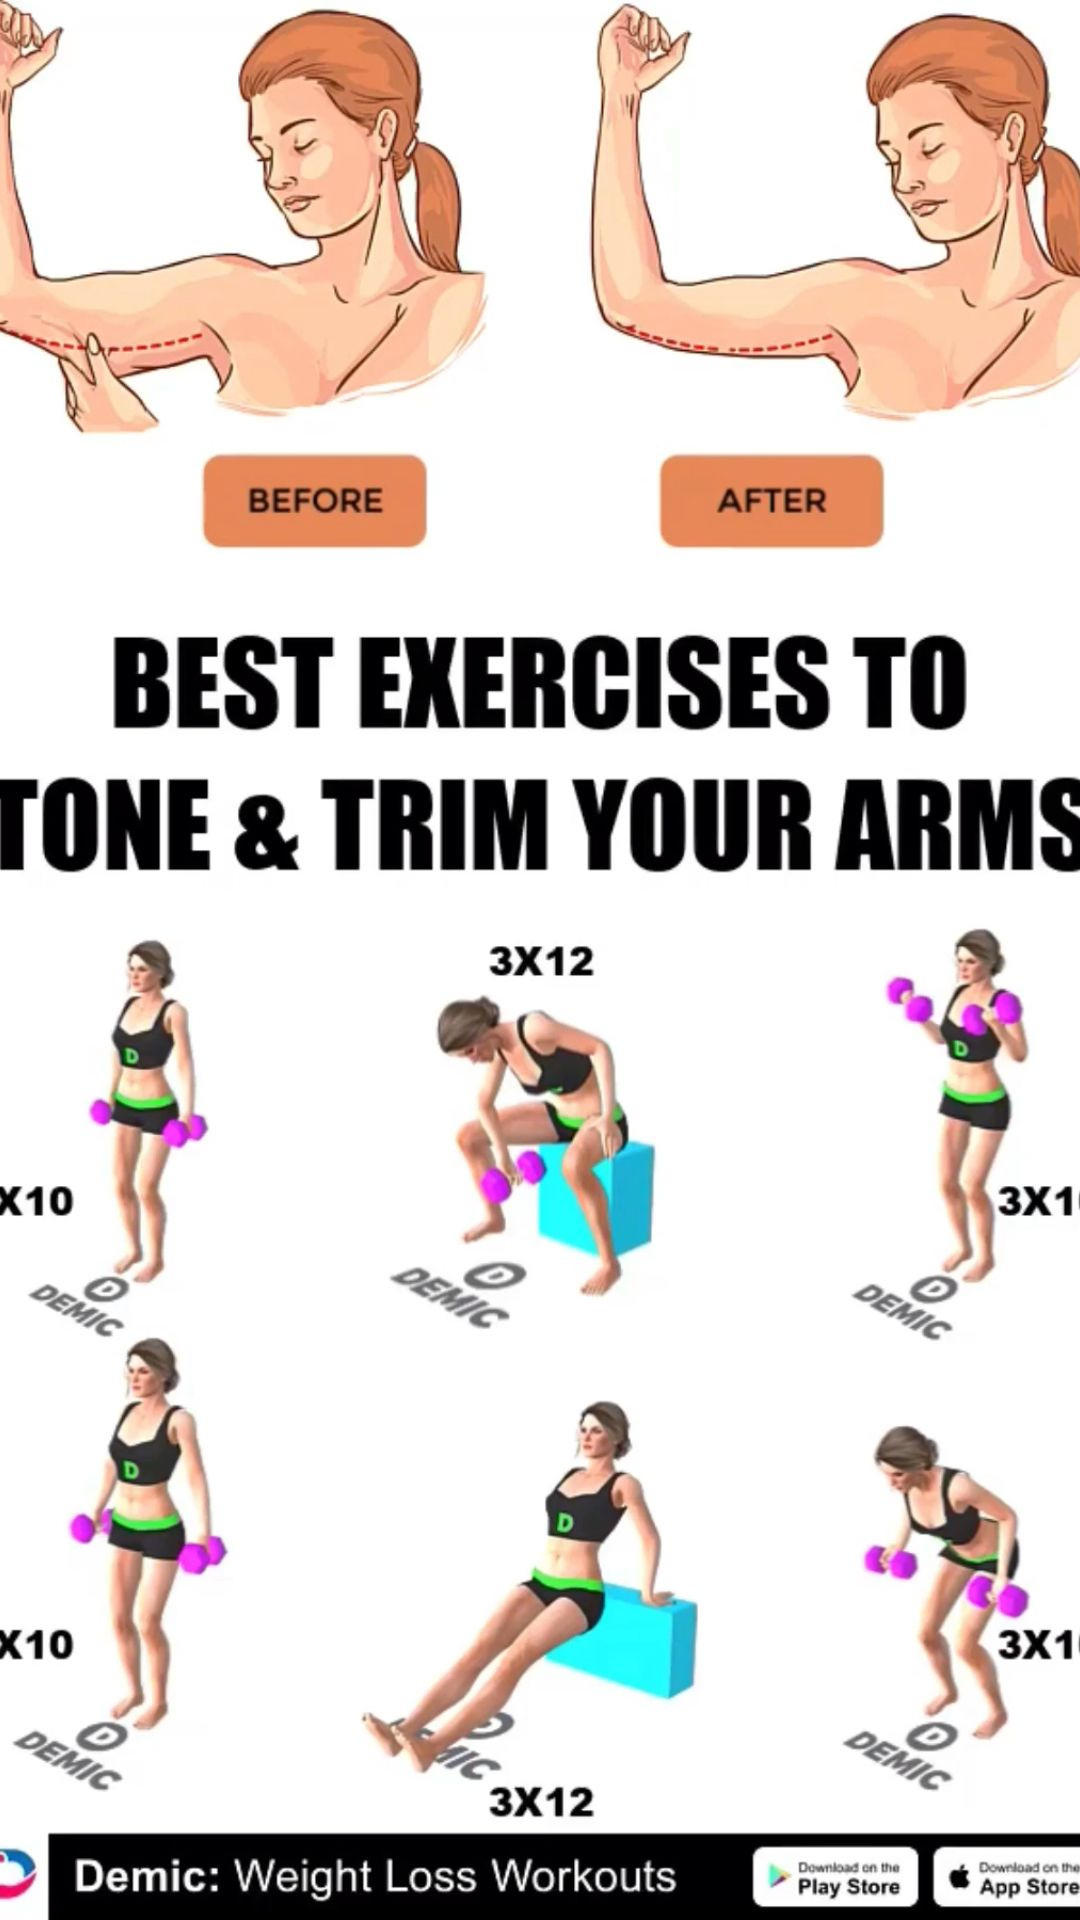 Best Exercises to Tone Your Arms